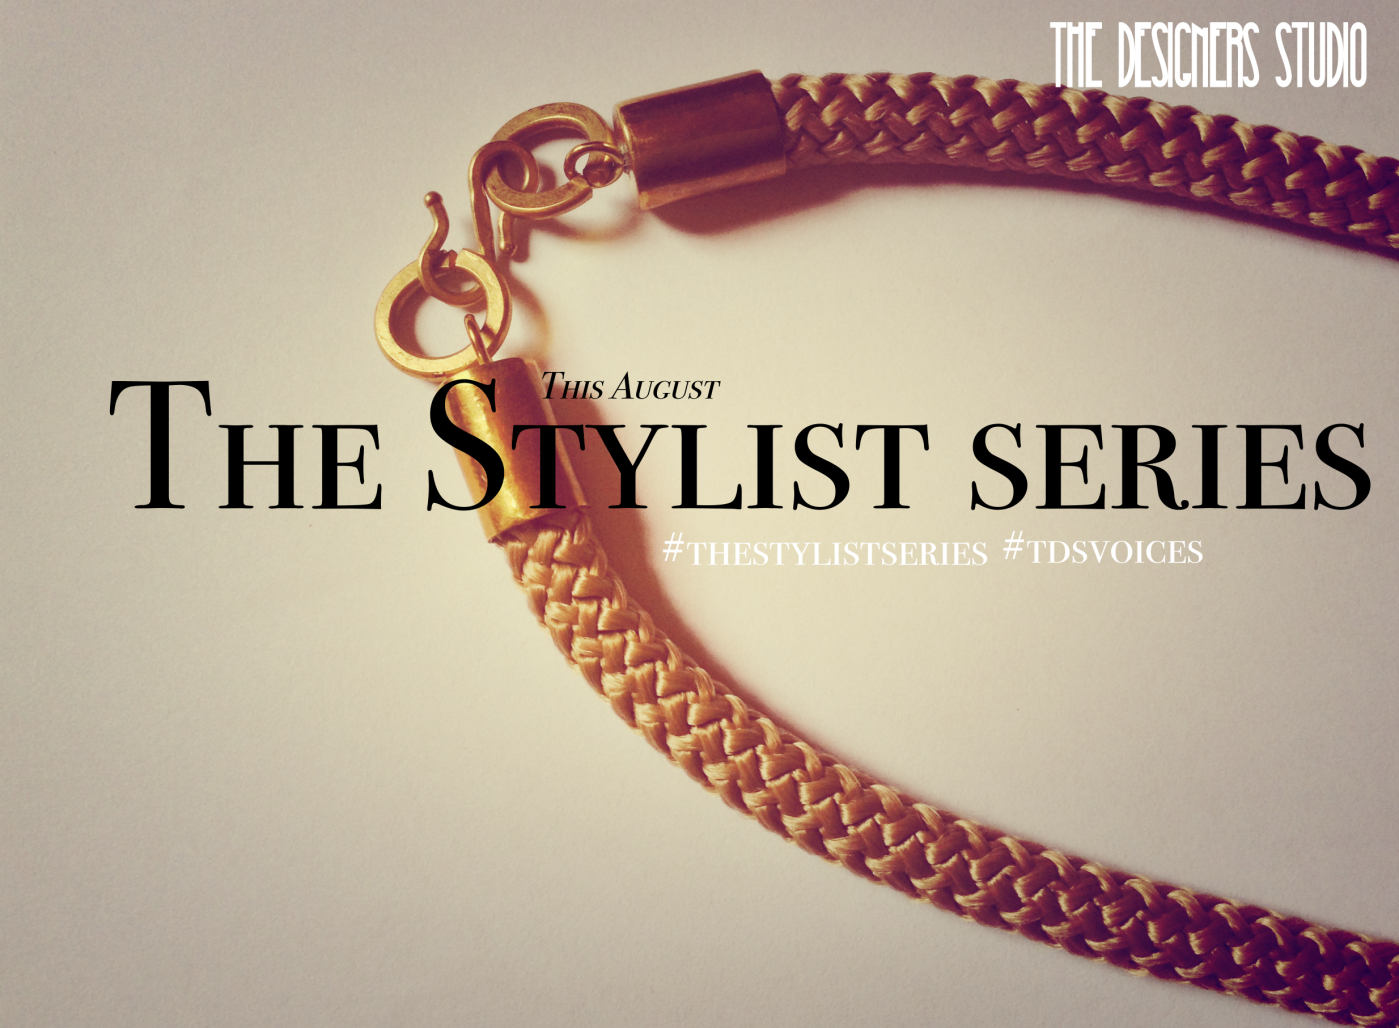 One stylish month ahead - The Stylist August Series #TheStylistSeries